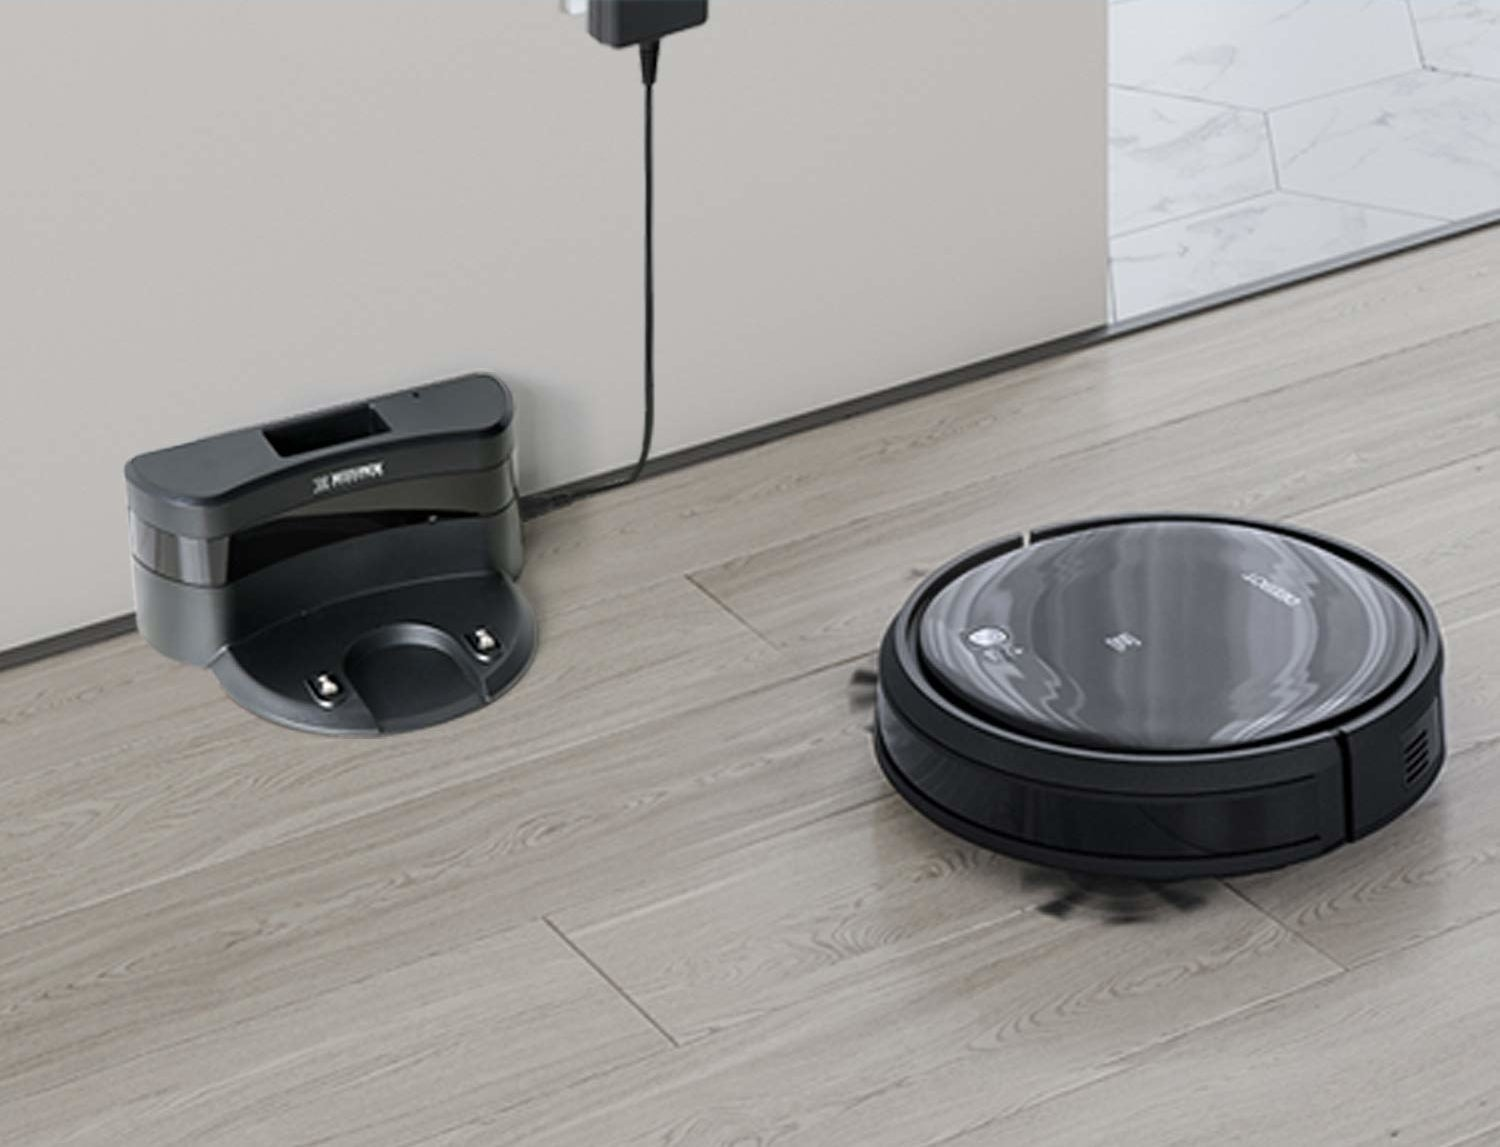 Vacuum cleaning robot going back to its charging station.